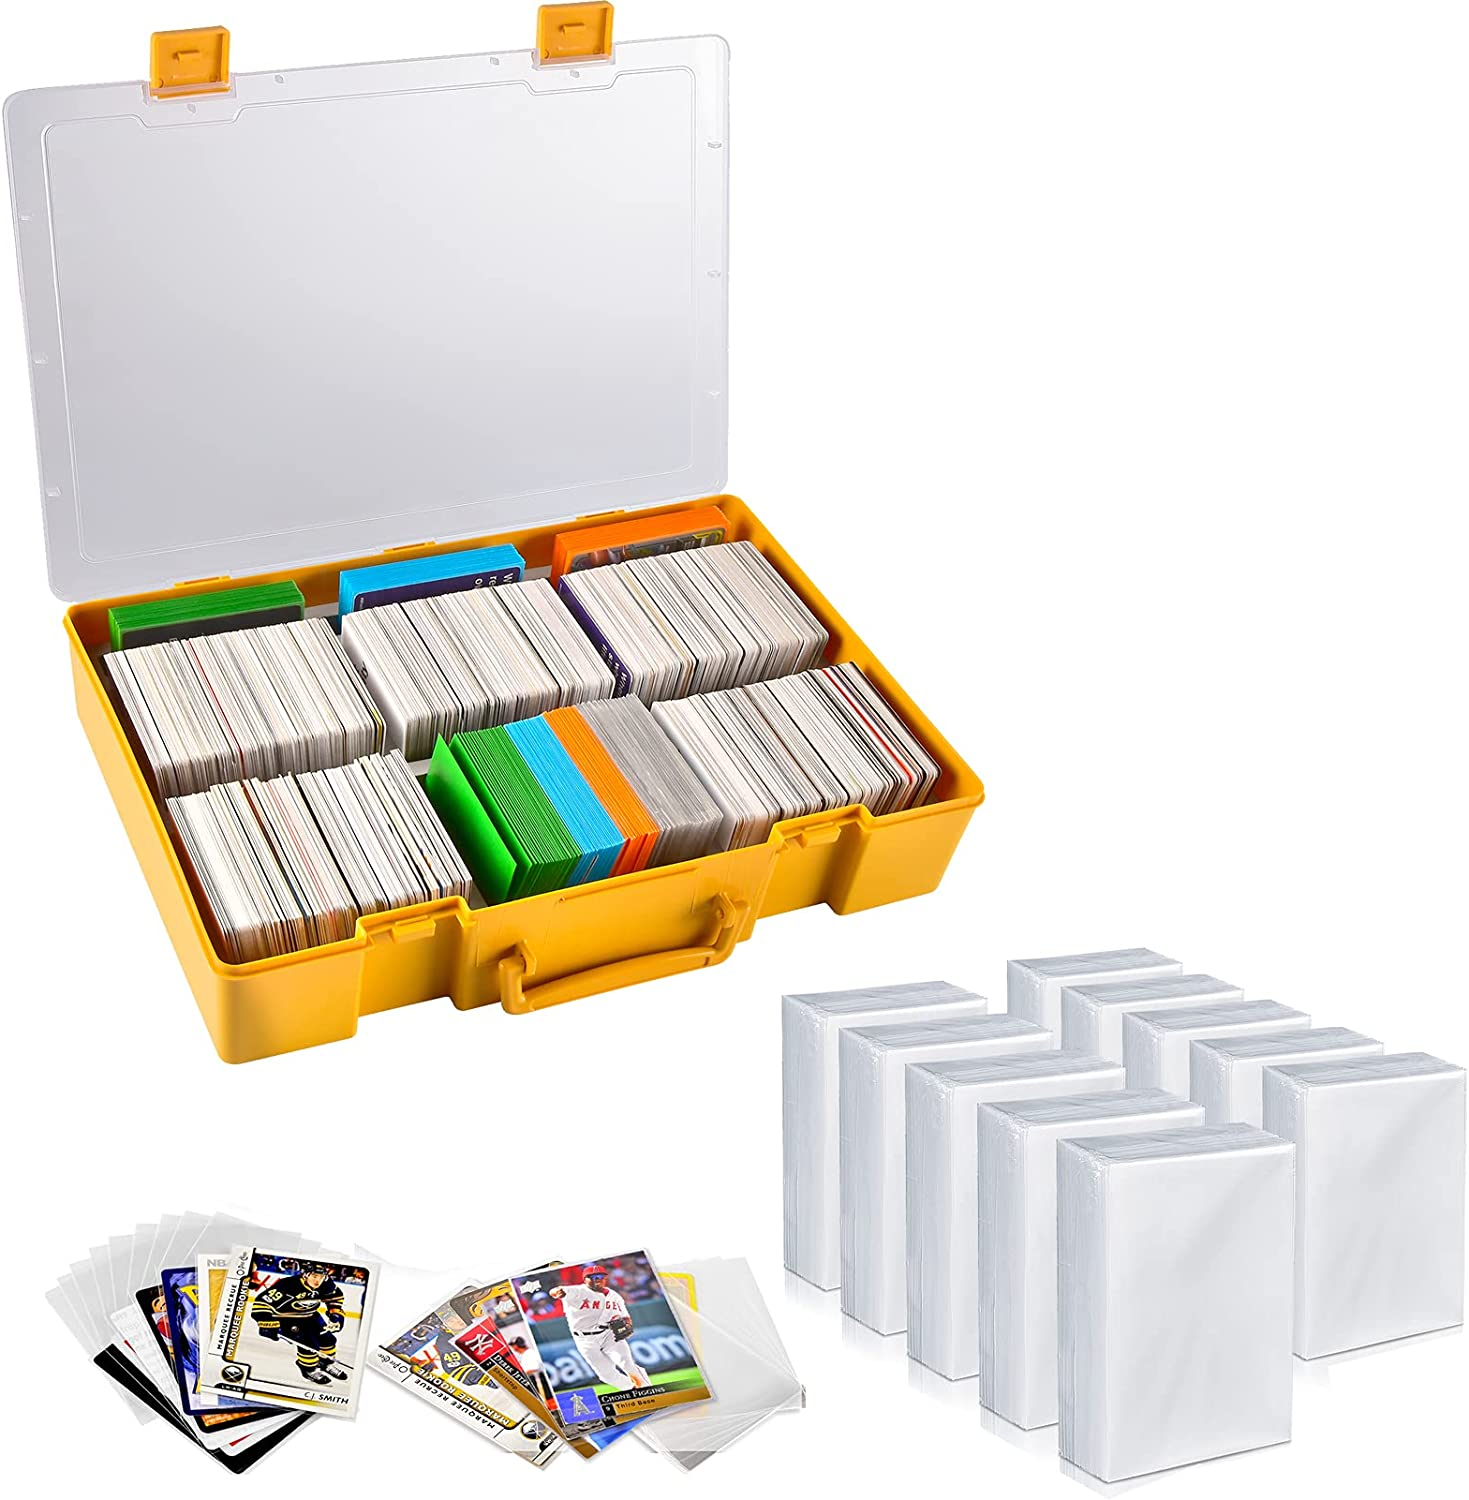 Large 2200+ Trading Low price Card Game Holder 1000 S Max 74% OFF with Organizer Penny